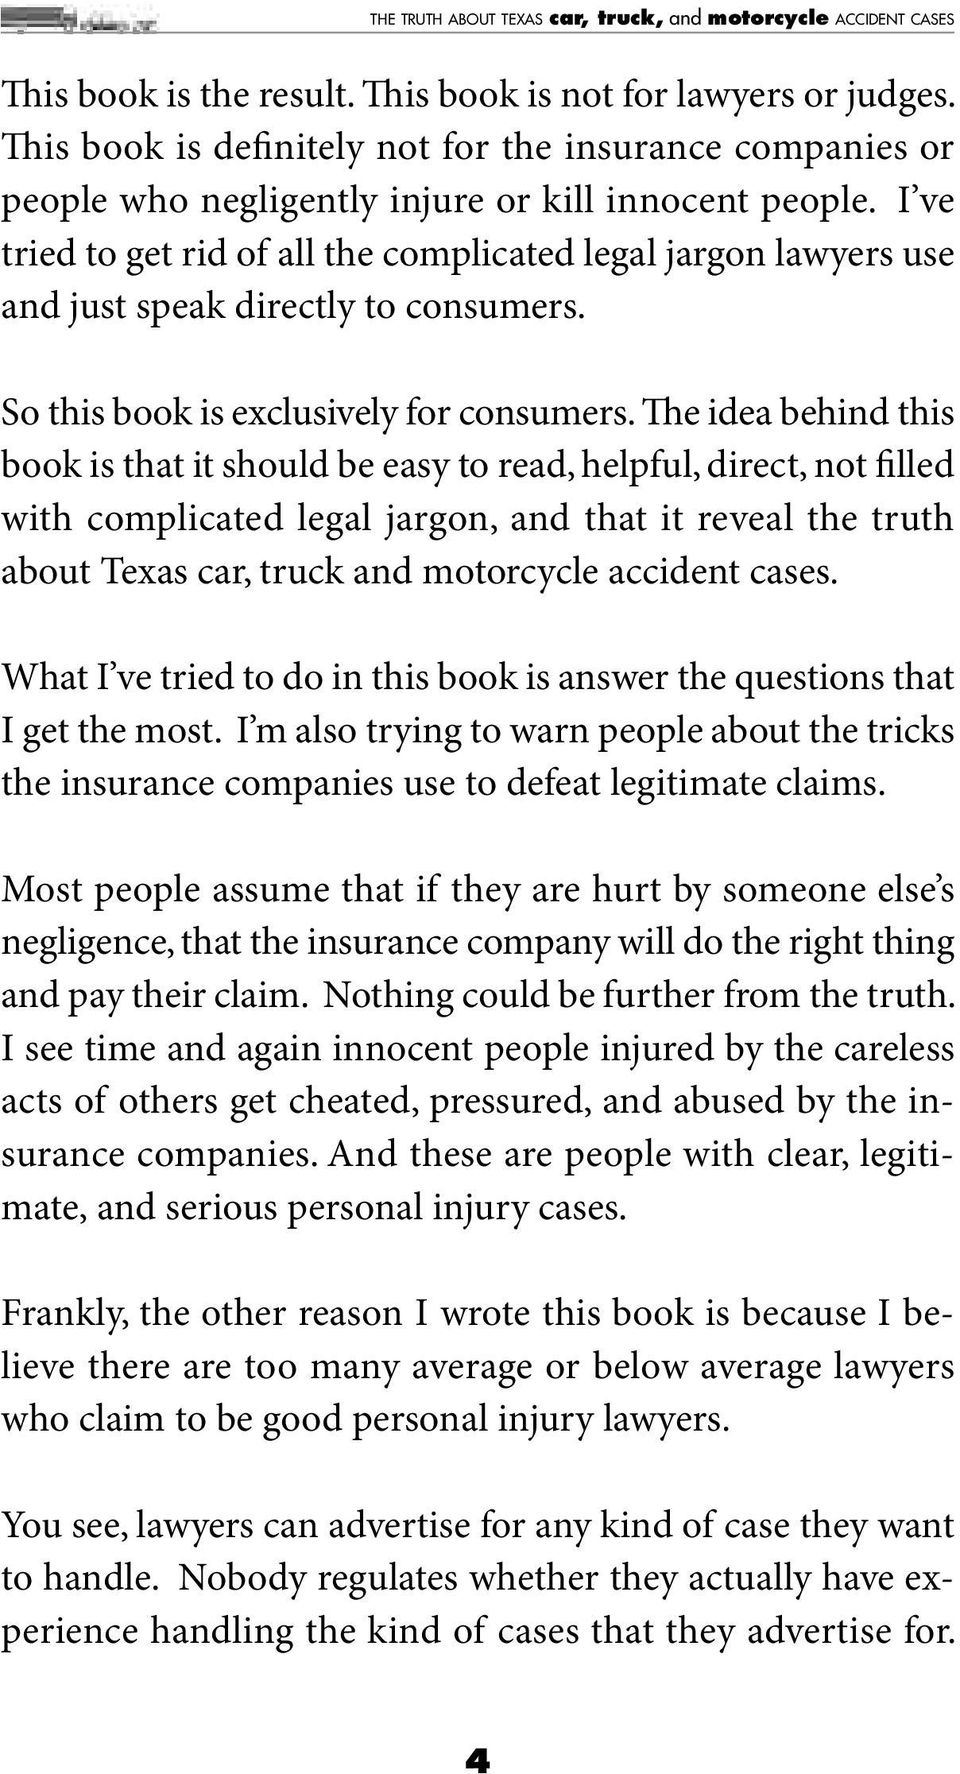 e idea behind this book is that it should be easy to read, helpful, direct, not filled with complicated legal jargon, and that it reveal the truth about Texas car, truck and motorcycle accident cases.